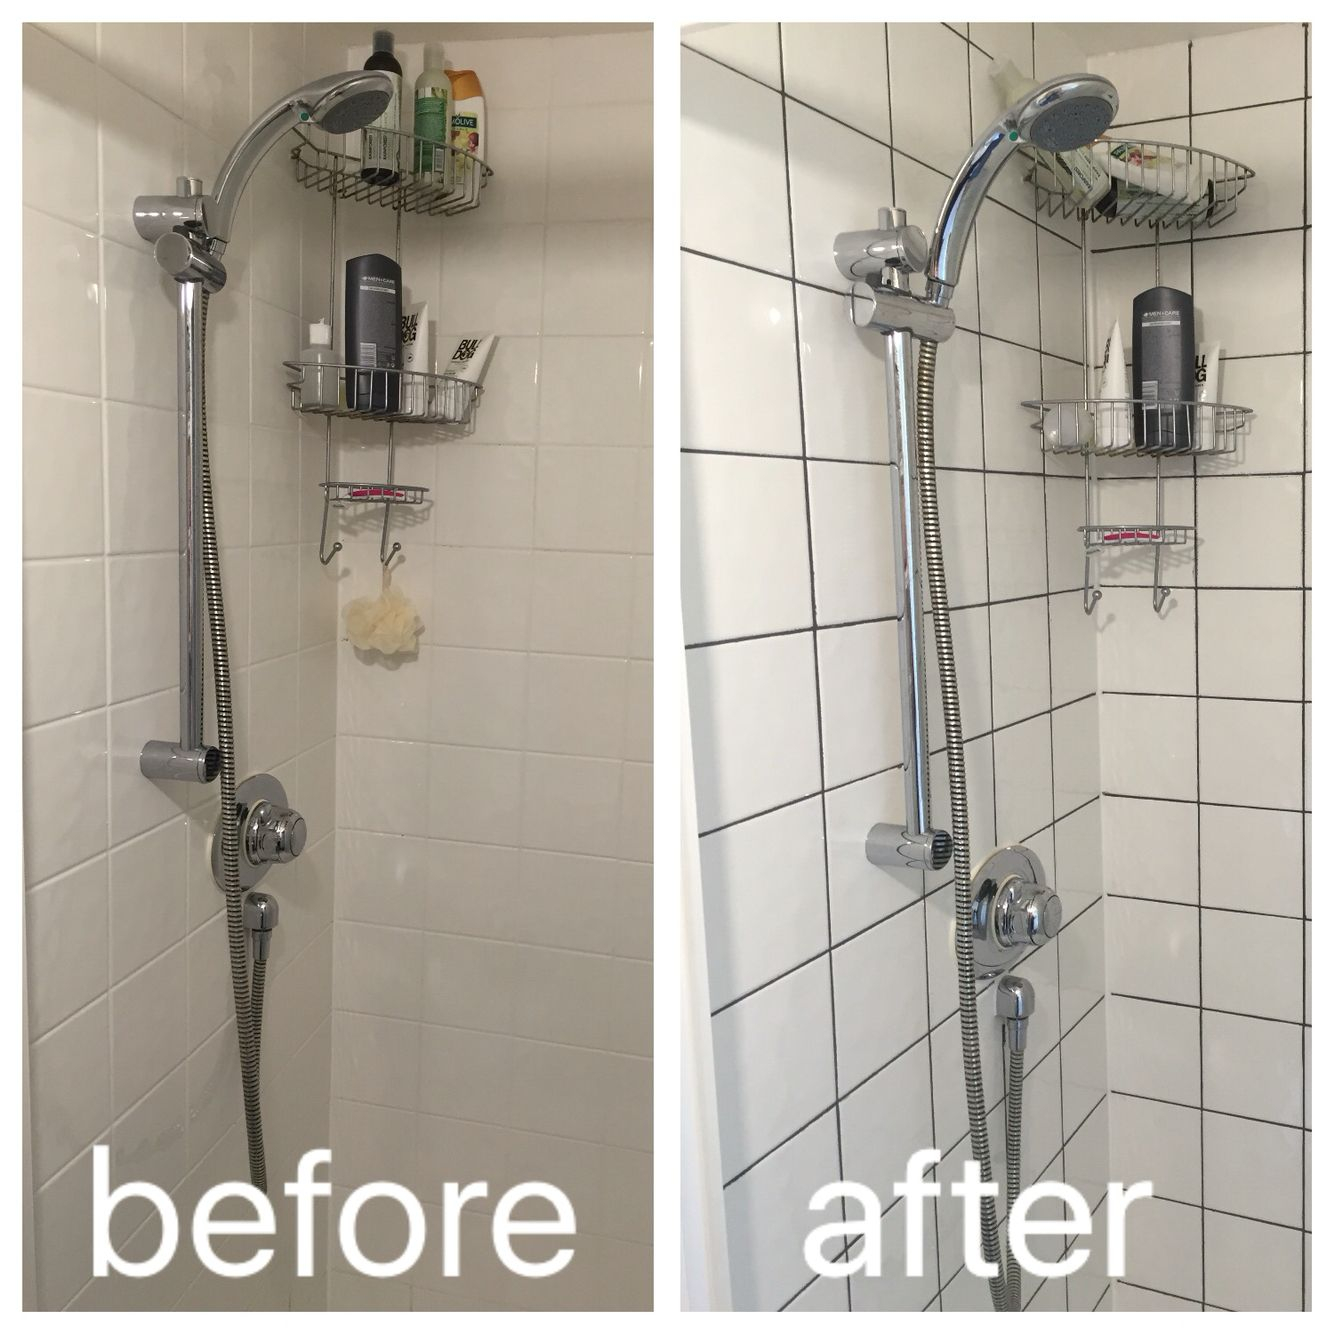 Regrouting With Dark Grey Grout To Modernise A Boring Shower with regard to dimensions 1334 X 1334